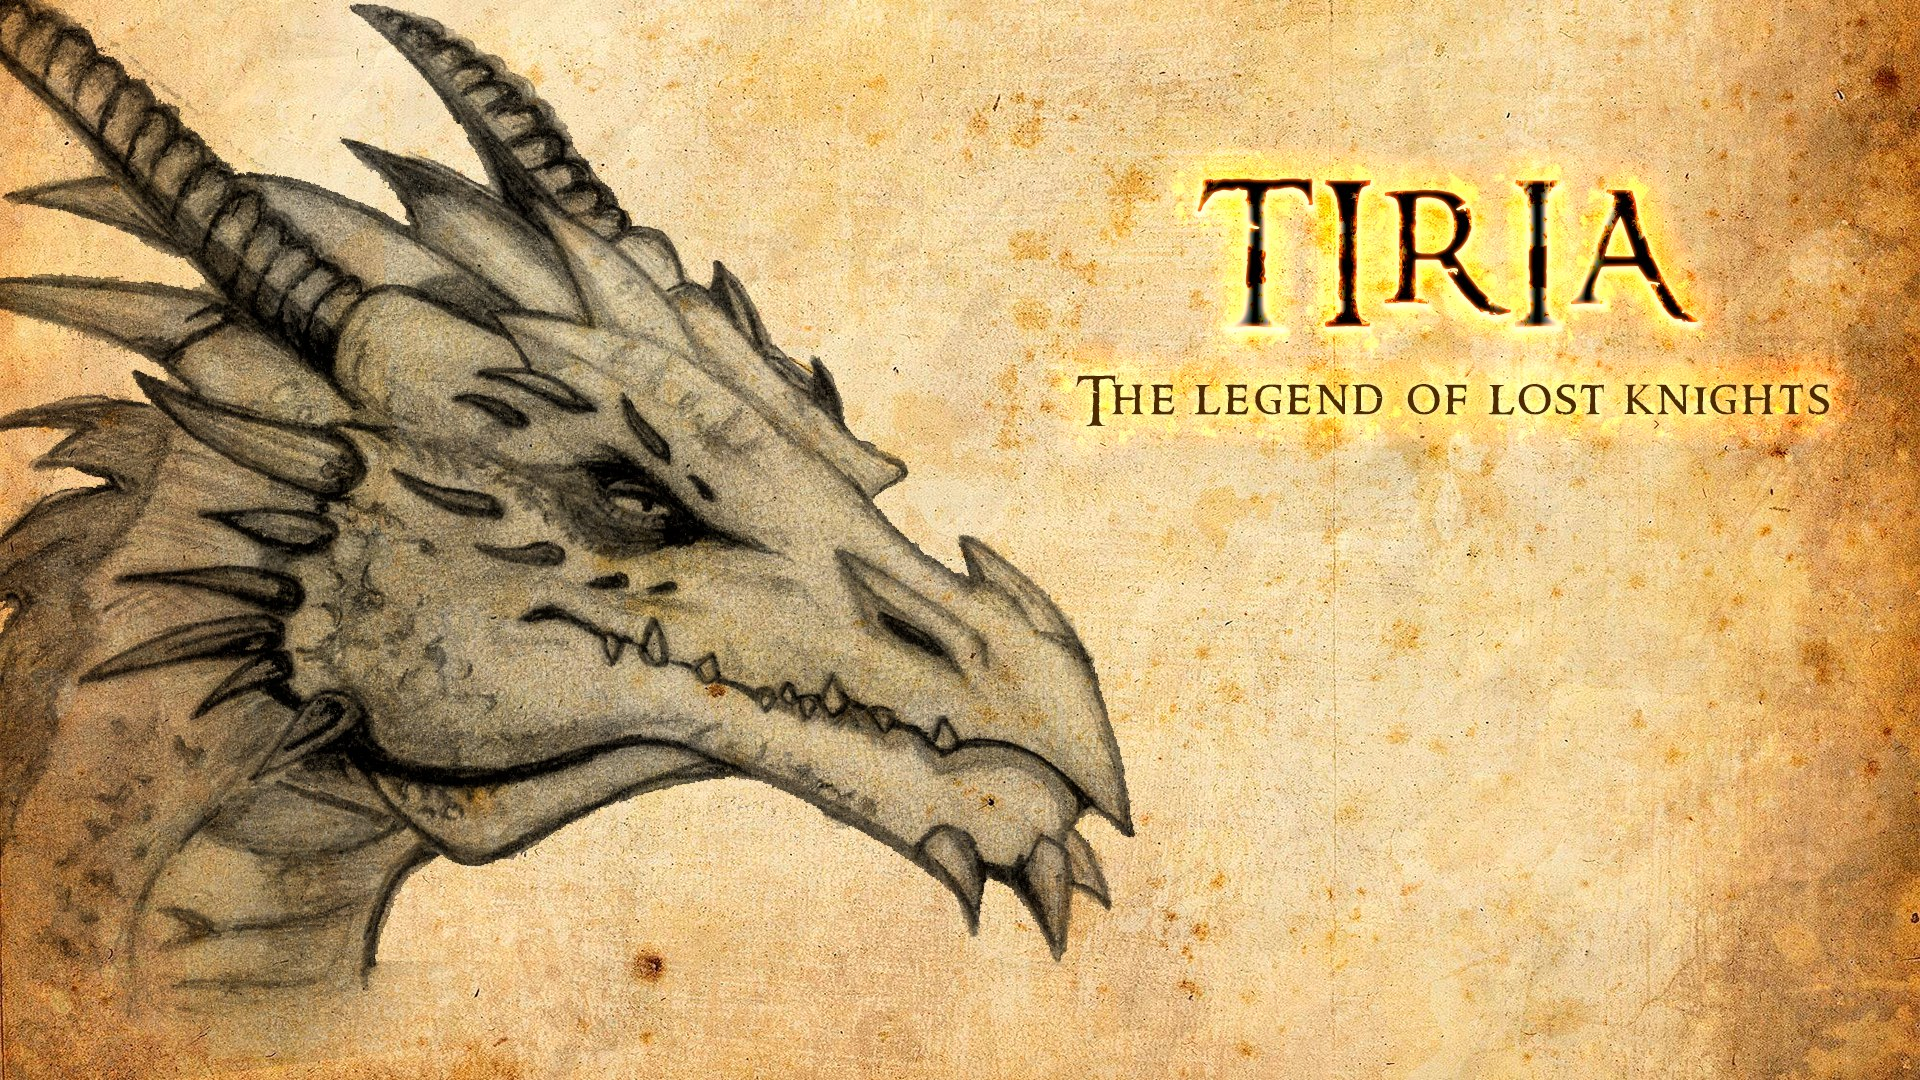 Tiria: legend of lost knights | Beta 2017 - Приключения ждут! [1.7.10][MAP][Client]